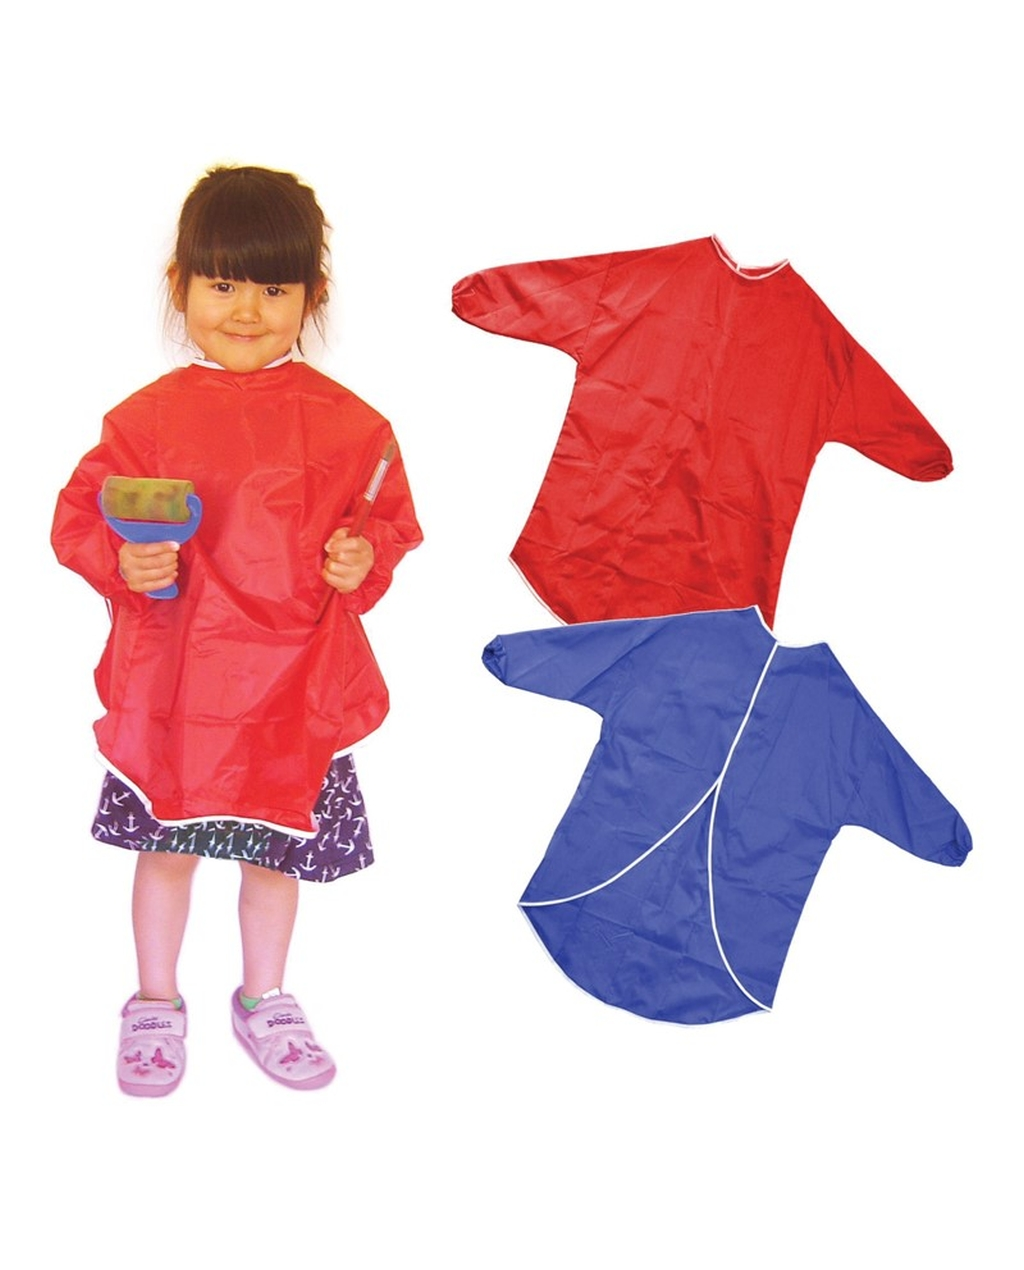 Children's Play Apron 65cm Red